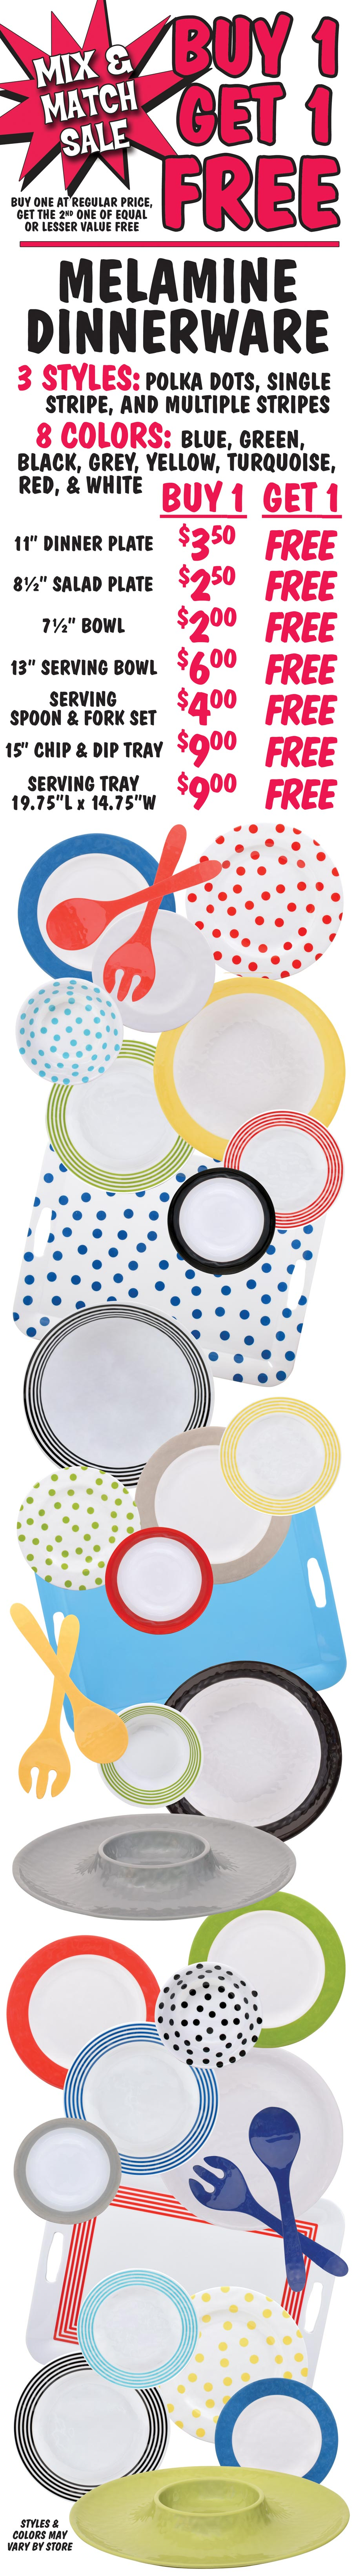 Melamine Dinnerware Buy One Get One Free - 3 Styles, 8 Colors - Dinner Plate $3.50, Salad Plate $2.5, Bowl $2, Serving Bowl $6, Severing Spoon and Fork set $4, Chip and Dip Tray $9, Serving Tray $9.